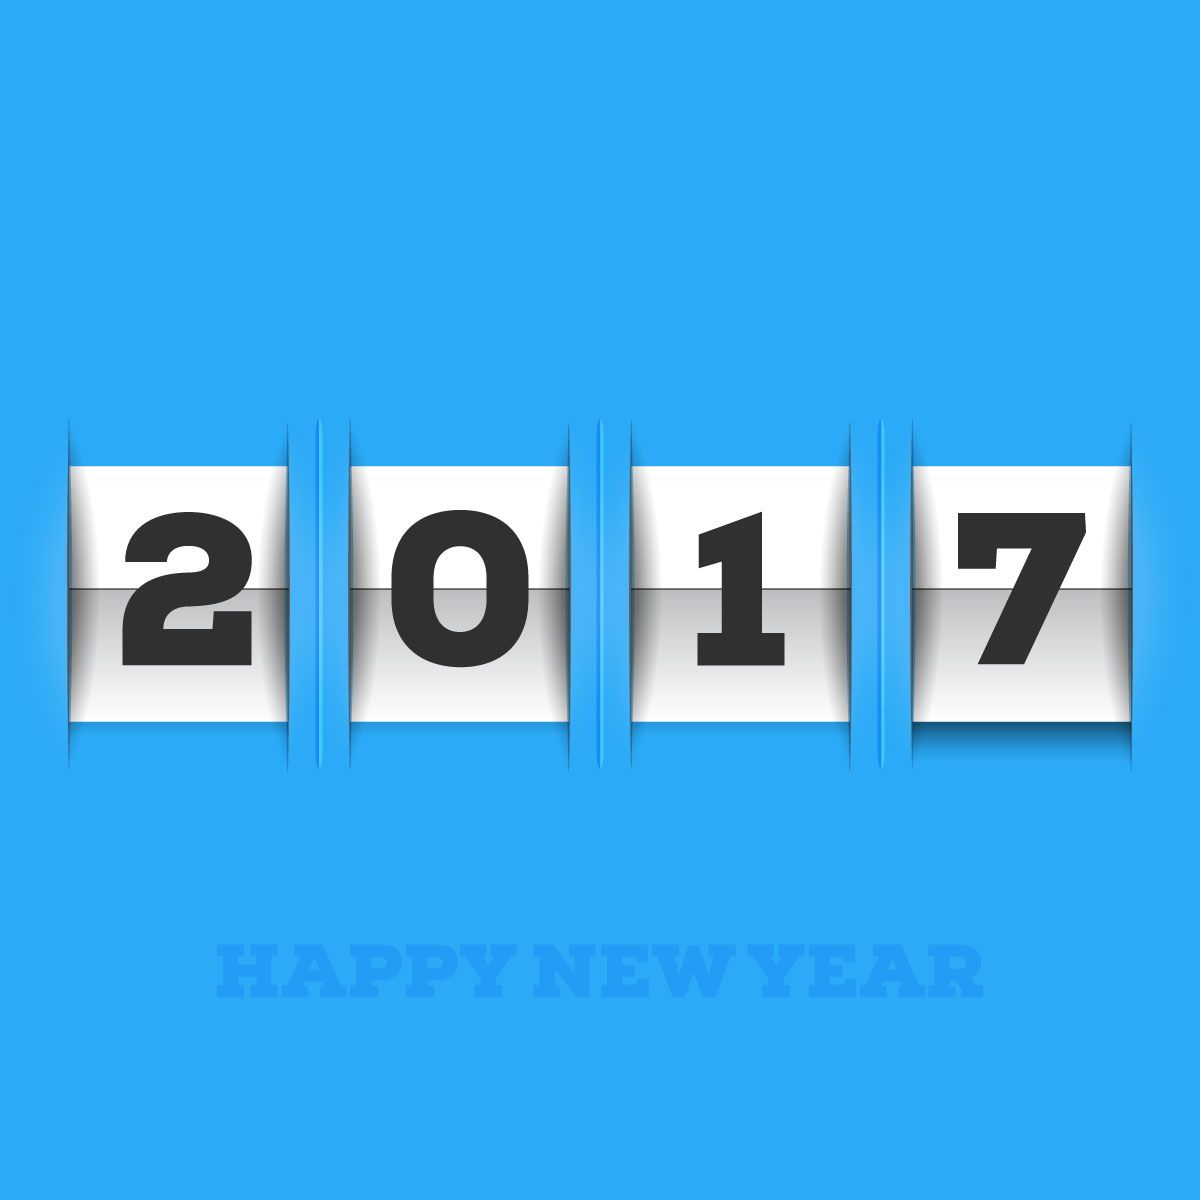 Happy new year wishes 2017 in tamil sinhala happy new year happy new year 2018 wishes messages quotes images poems kristyandbryce Images